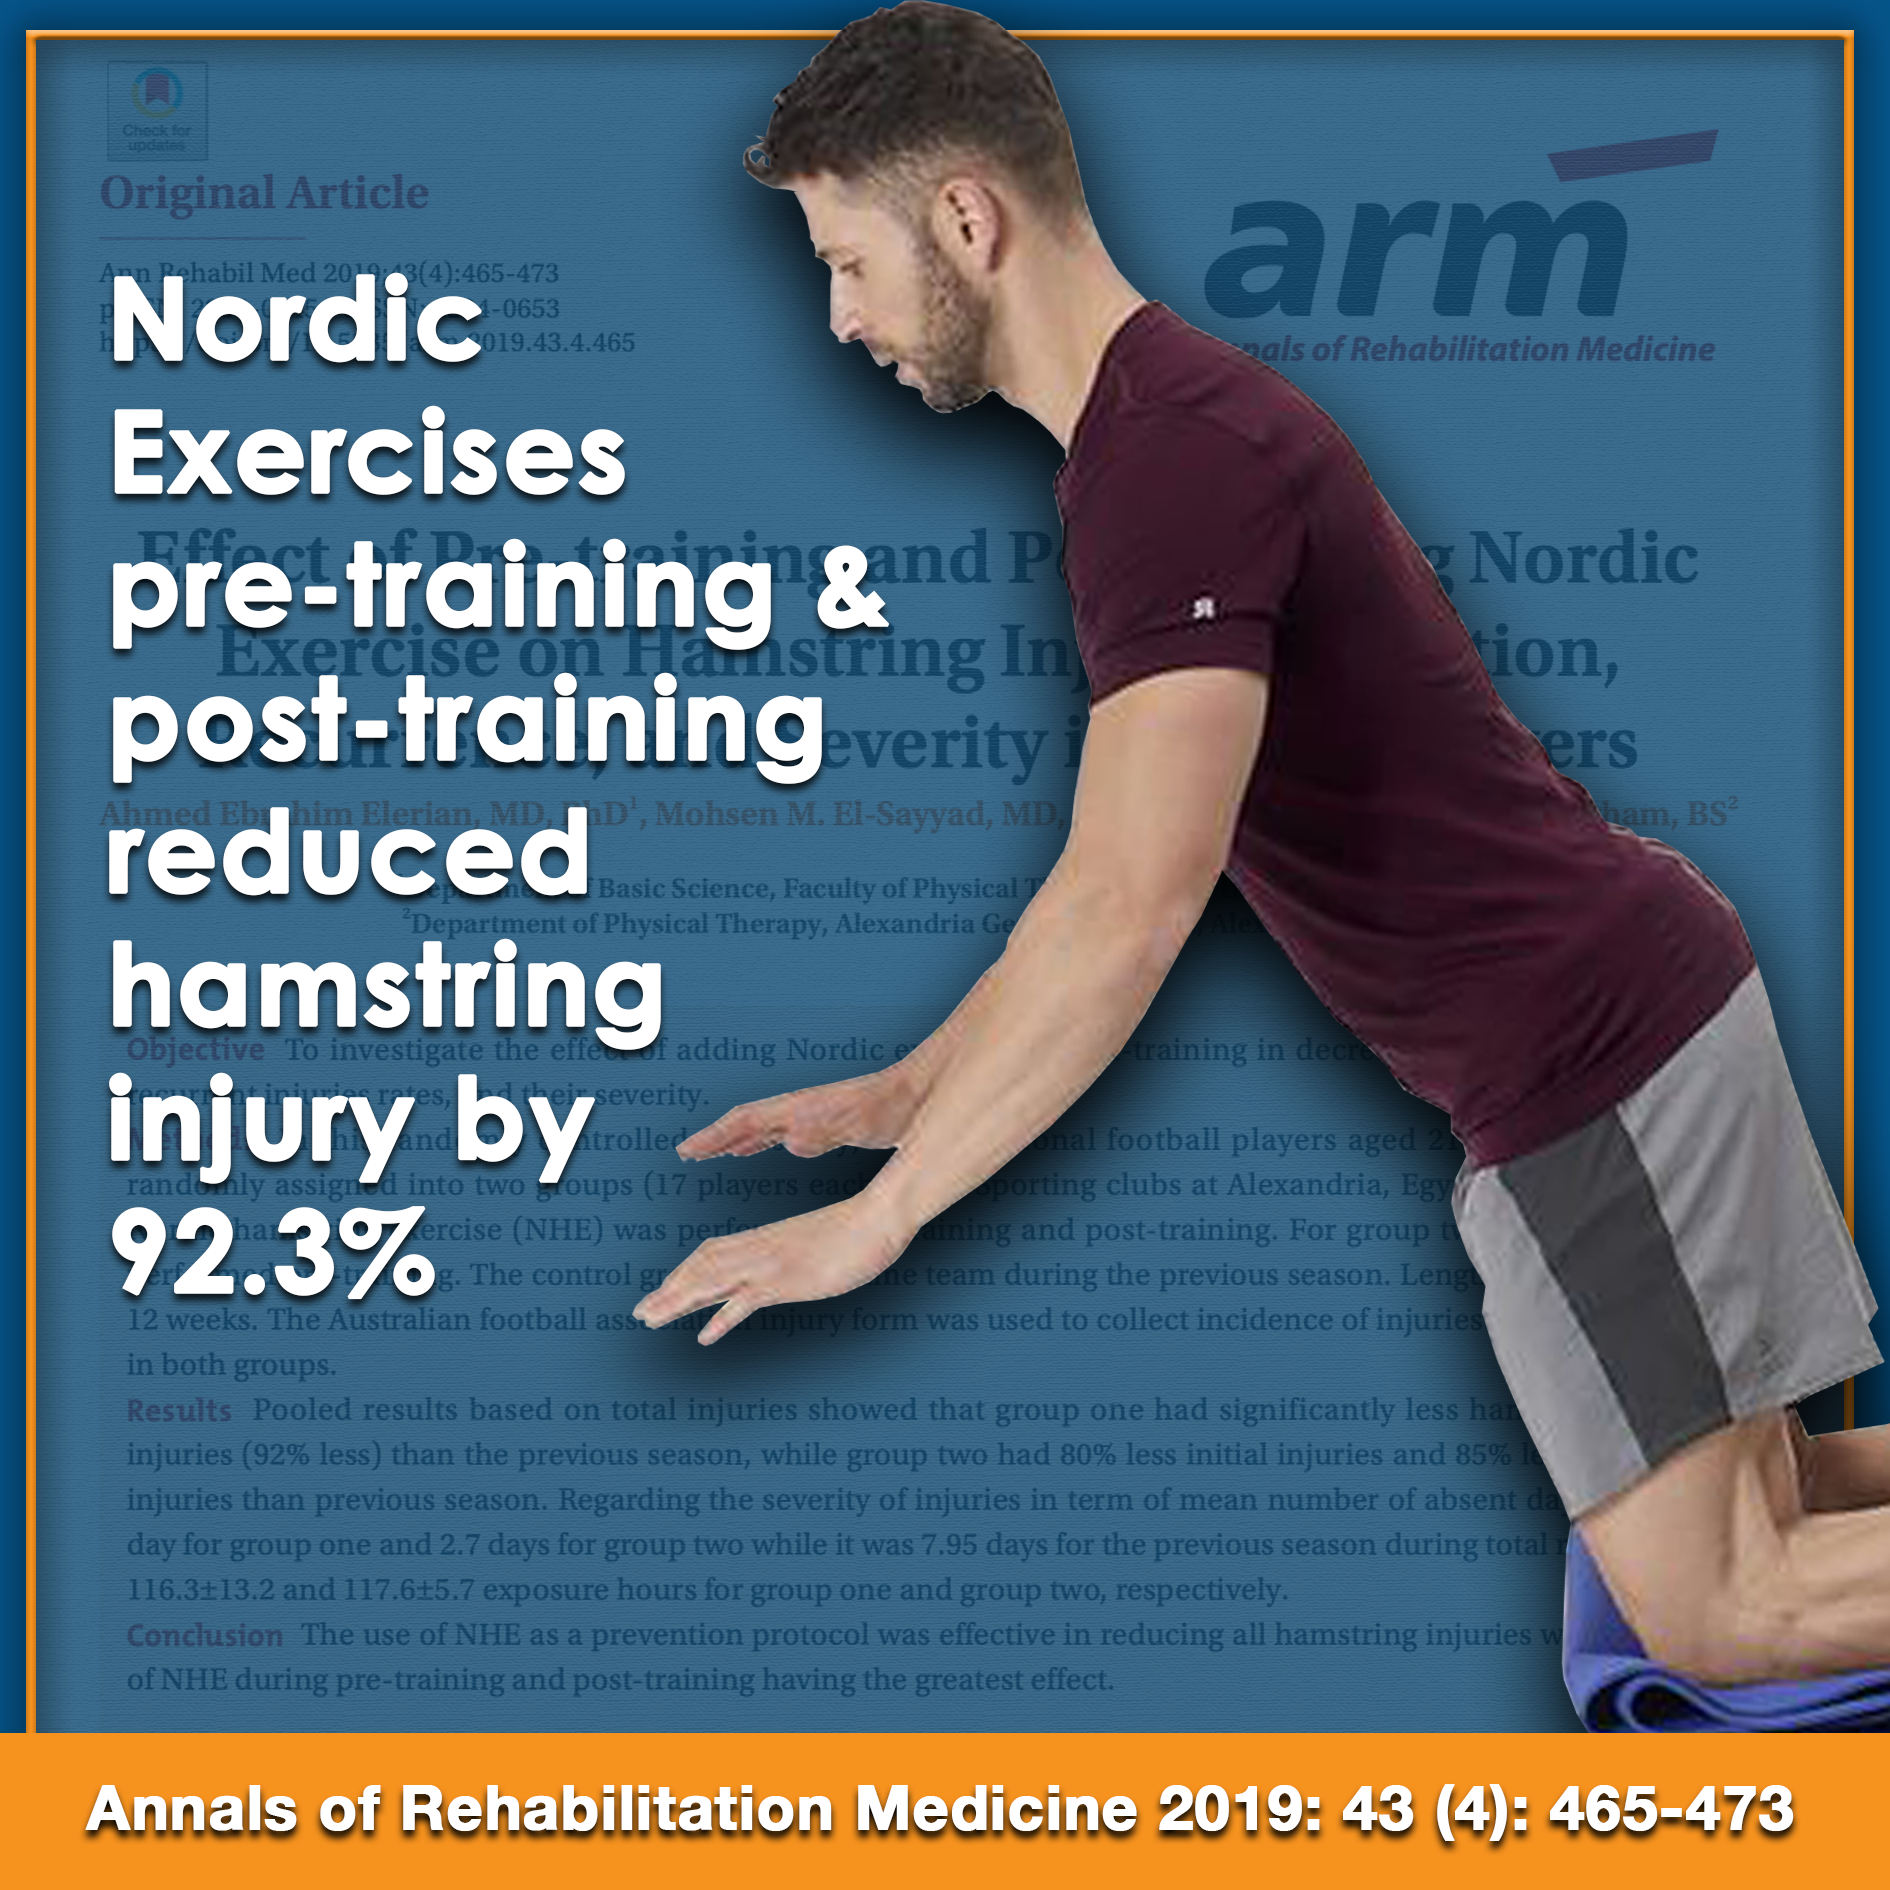 The Effect of Pre-training and Post-training Nordic Exercise on Hamstring Injury Prevention, Recurrence and Severity in Soccer Players.